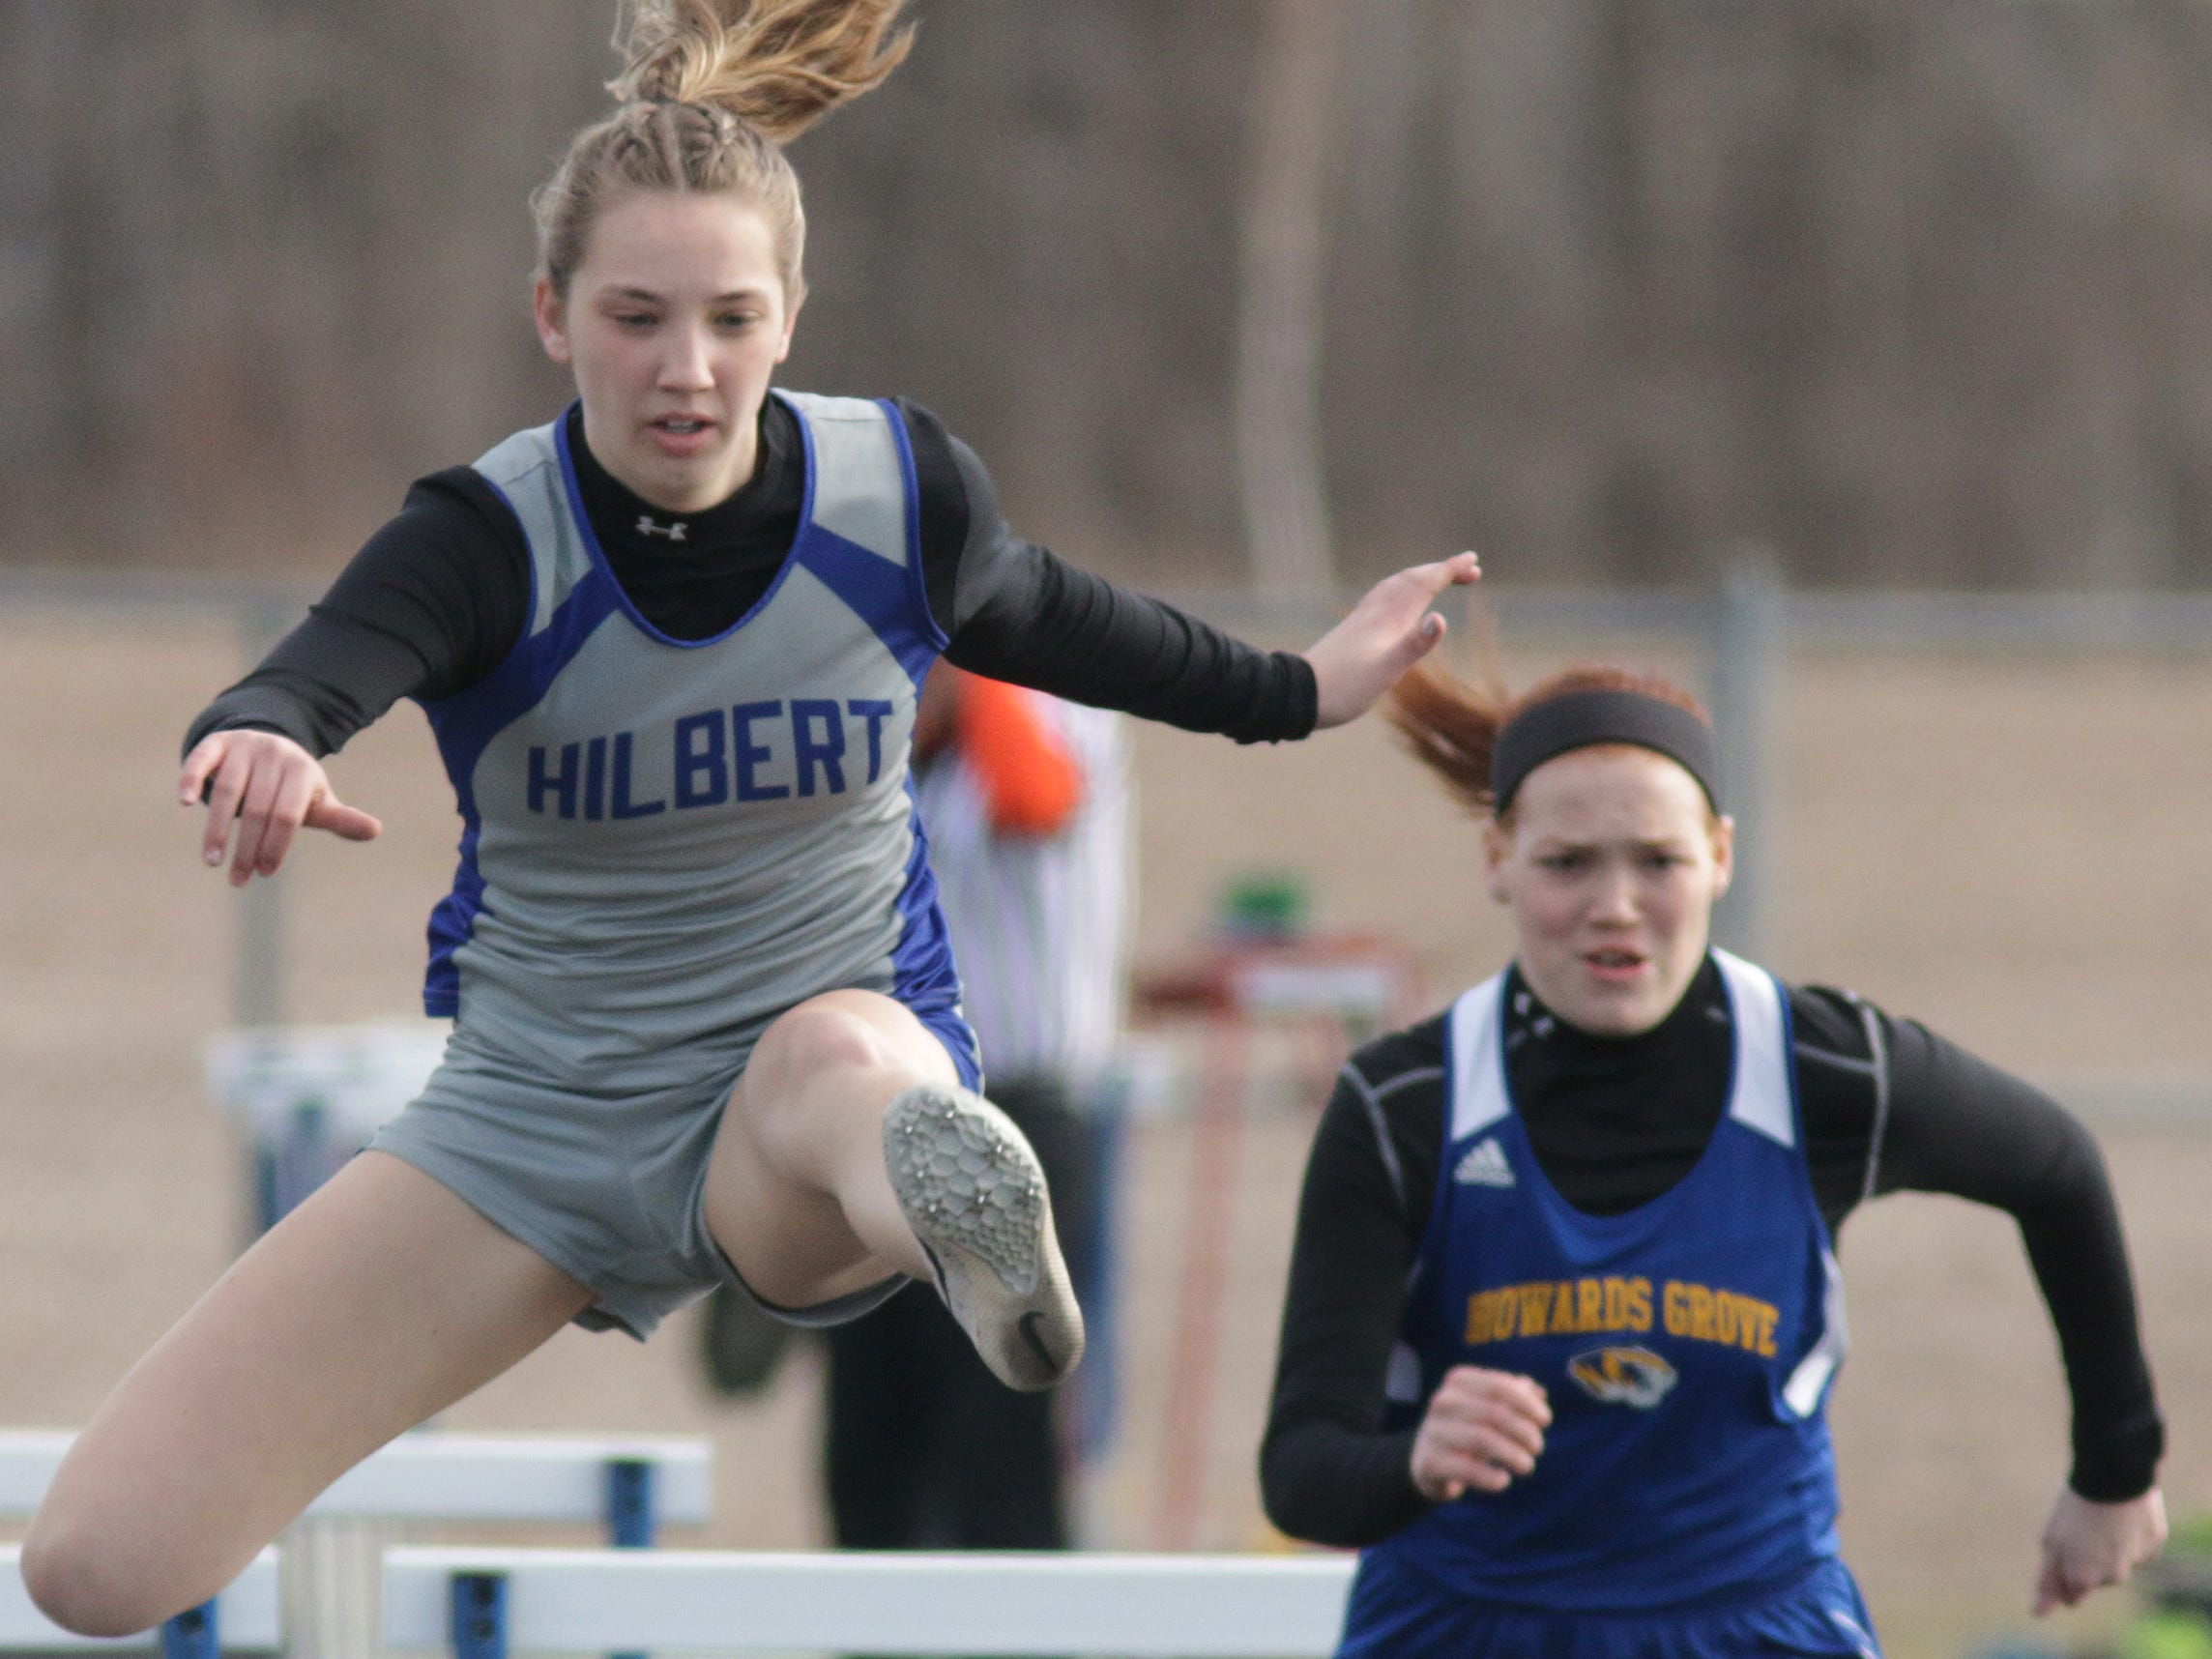 Hilbert's Heather Fry kept the pace during the high hurdles at the Howards Grove track meet, Tuesday, April 9, 2019, in Howards, Wis.